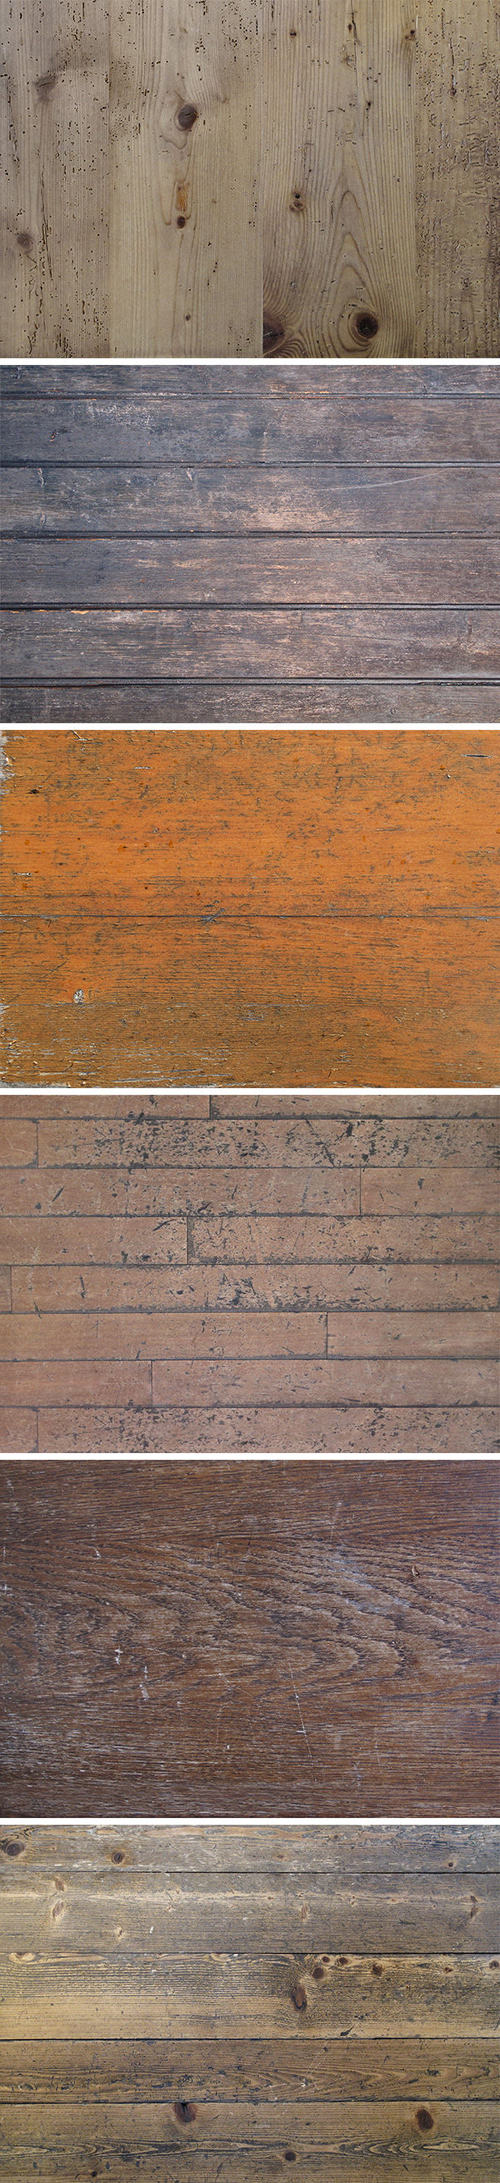 Vintage-Wood-Textures-free-high resolution-grunge-vintage-textures-backgrounds